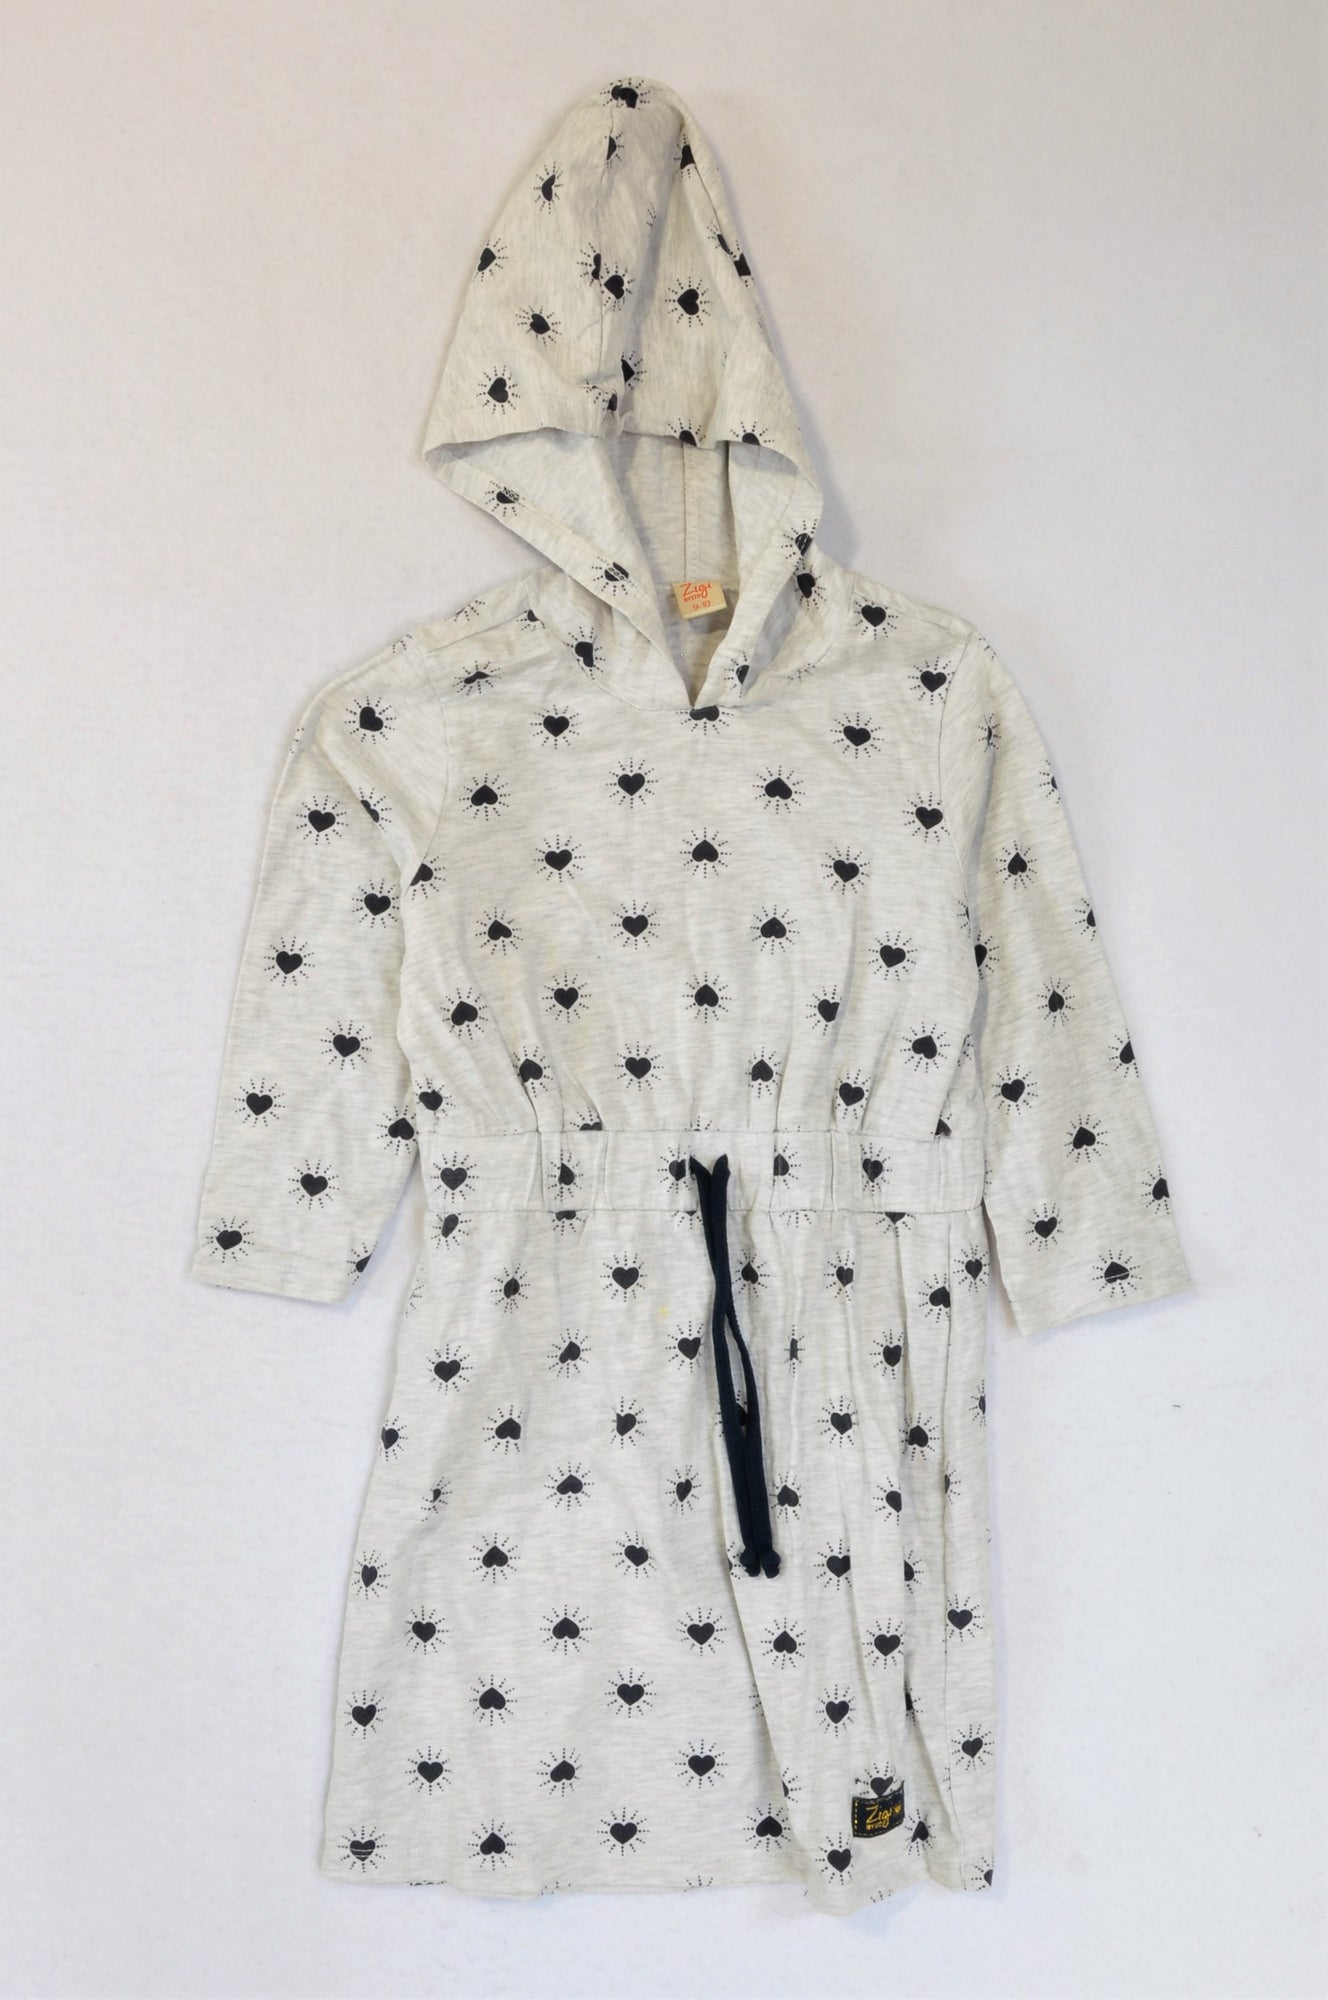 Zigi Grey Heathered Navy Heart Long Sleeve Hooded Dress Girls 9-10 years